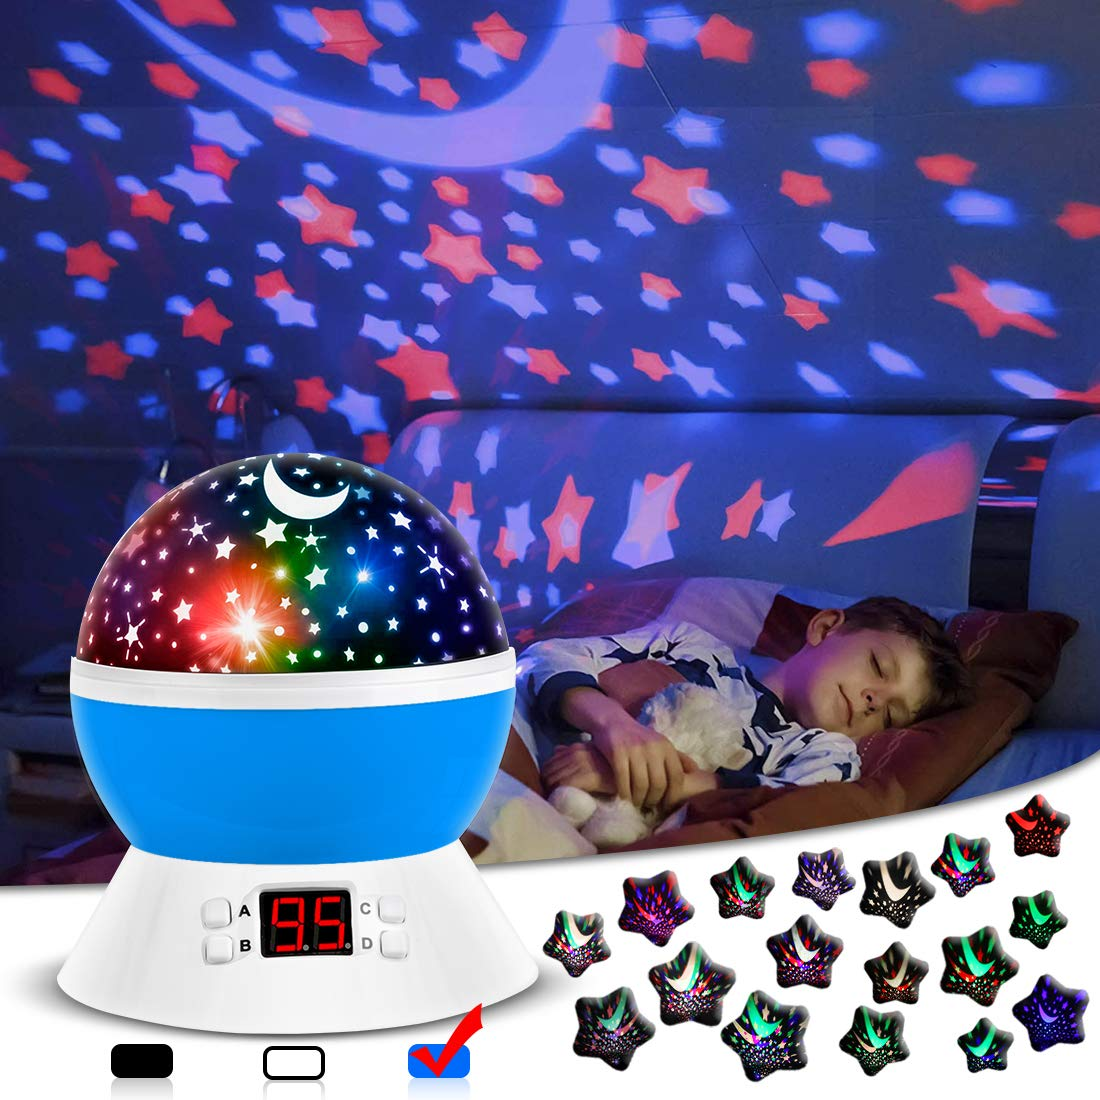 Night Lights for Kids, Star Light Projector with Timer Setting for Baby, Toddler Bedroom Decor, Boys and Girls Gift (Blue)